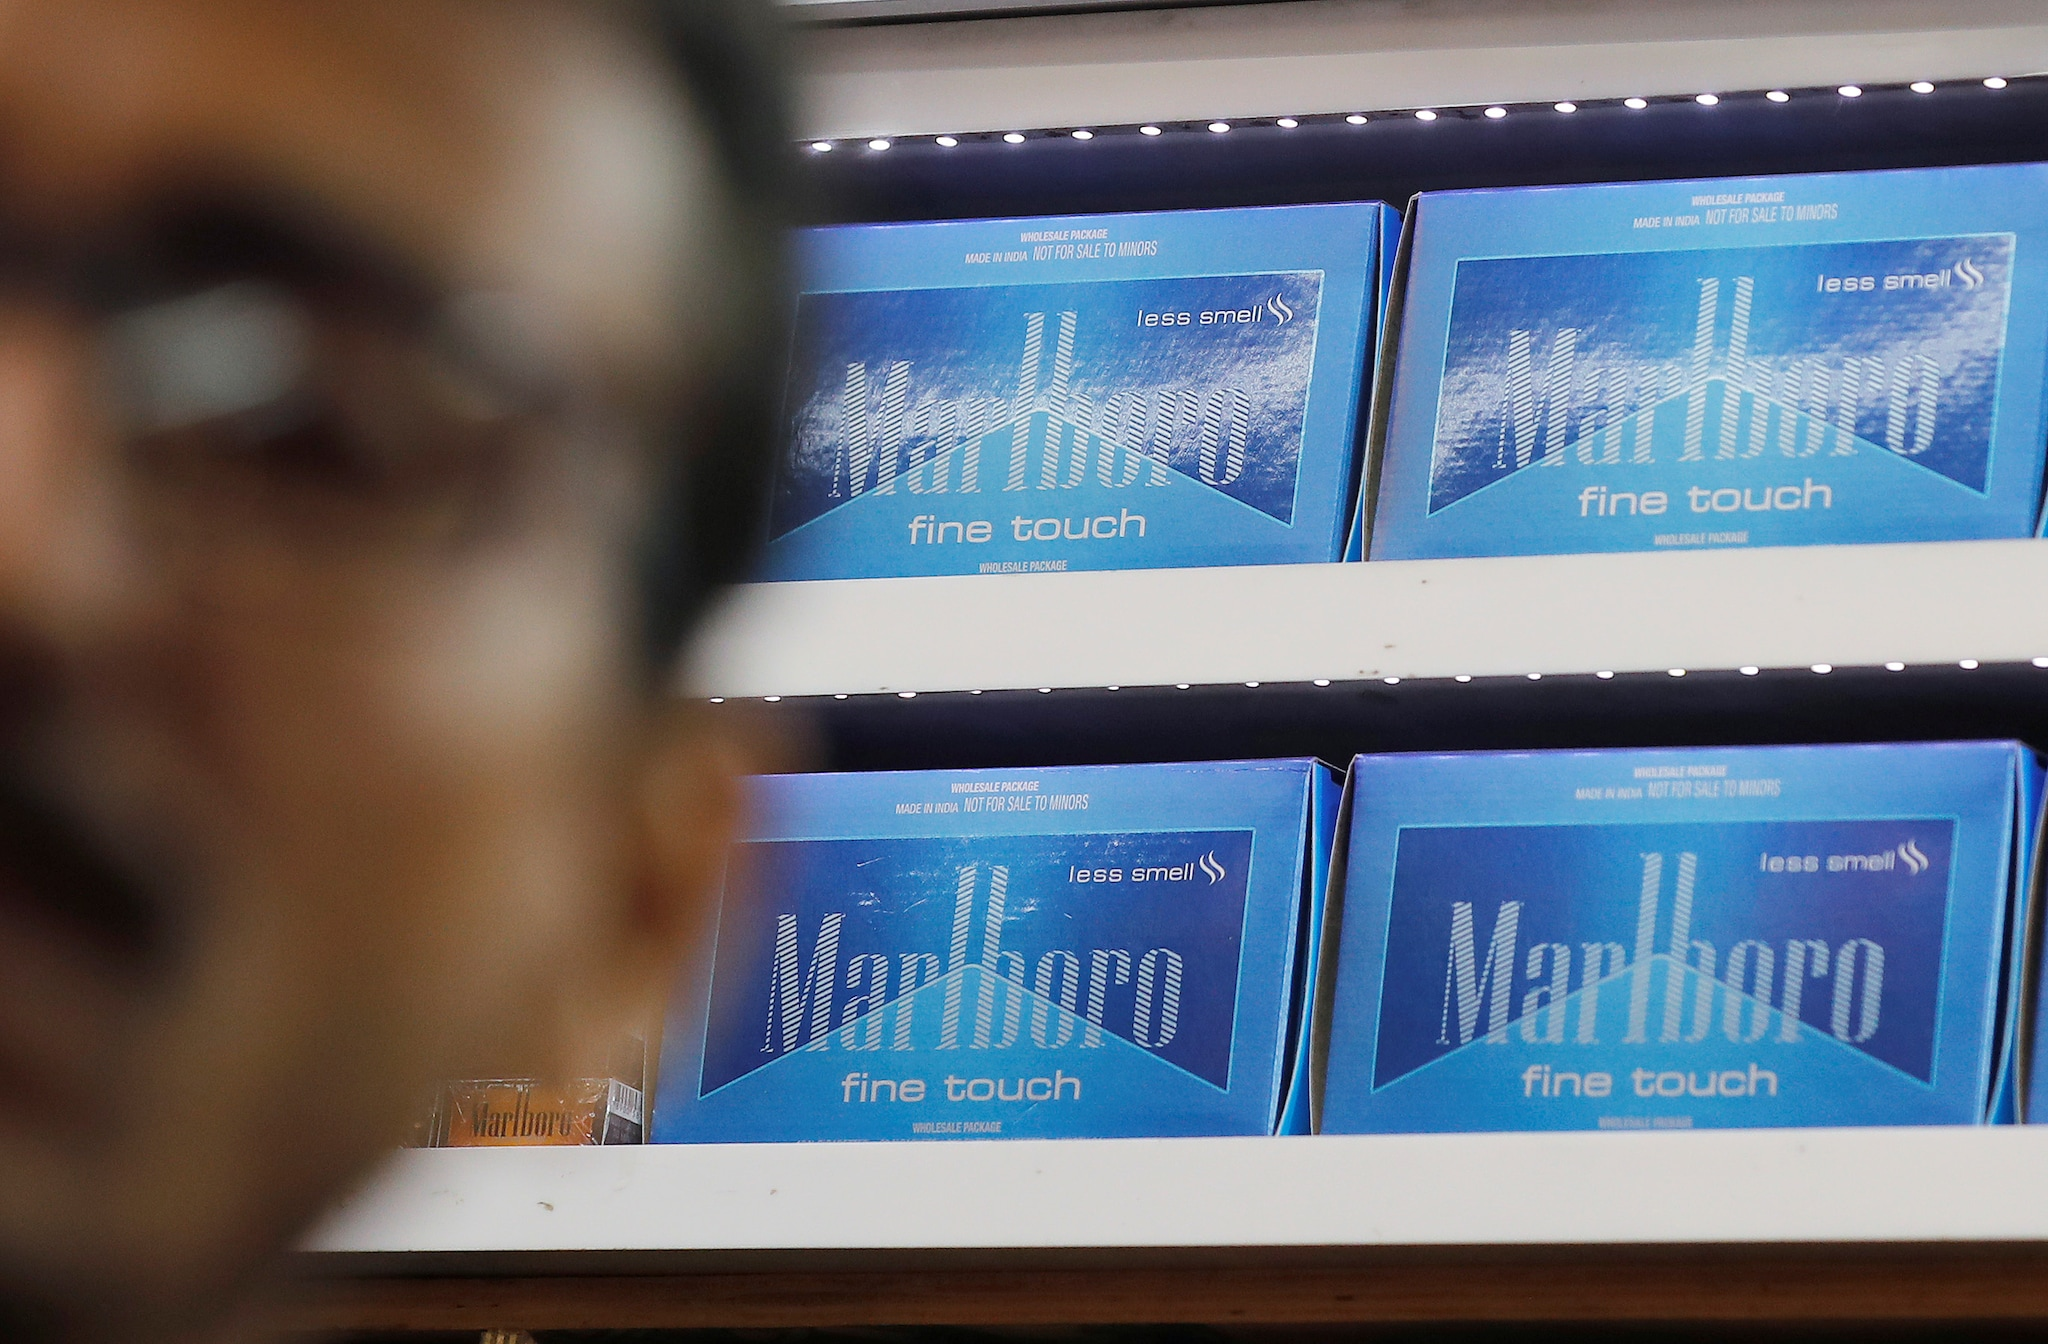 Godfrey Phillips India: The company on Monday said it is in complete compliance with the country's FDI norms and rejected allegations of violations regarding its arrangements for manufacturing Marlboro cigarettes. (Image: Reuters)